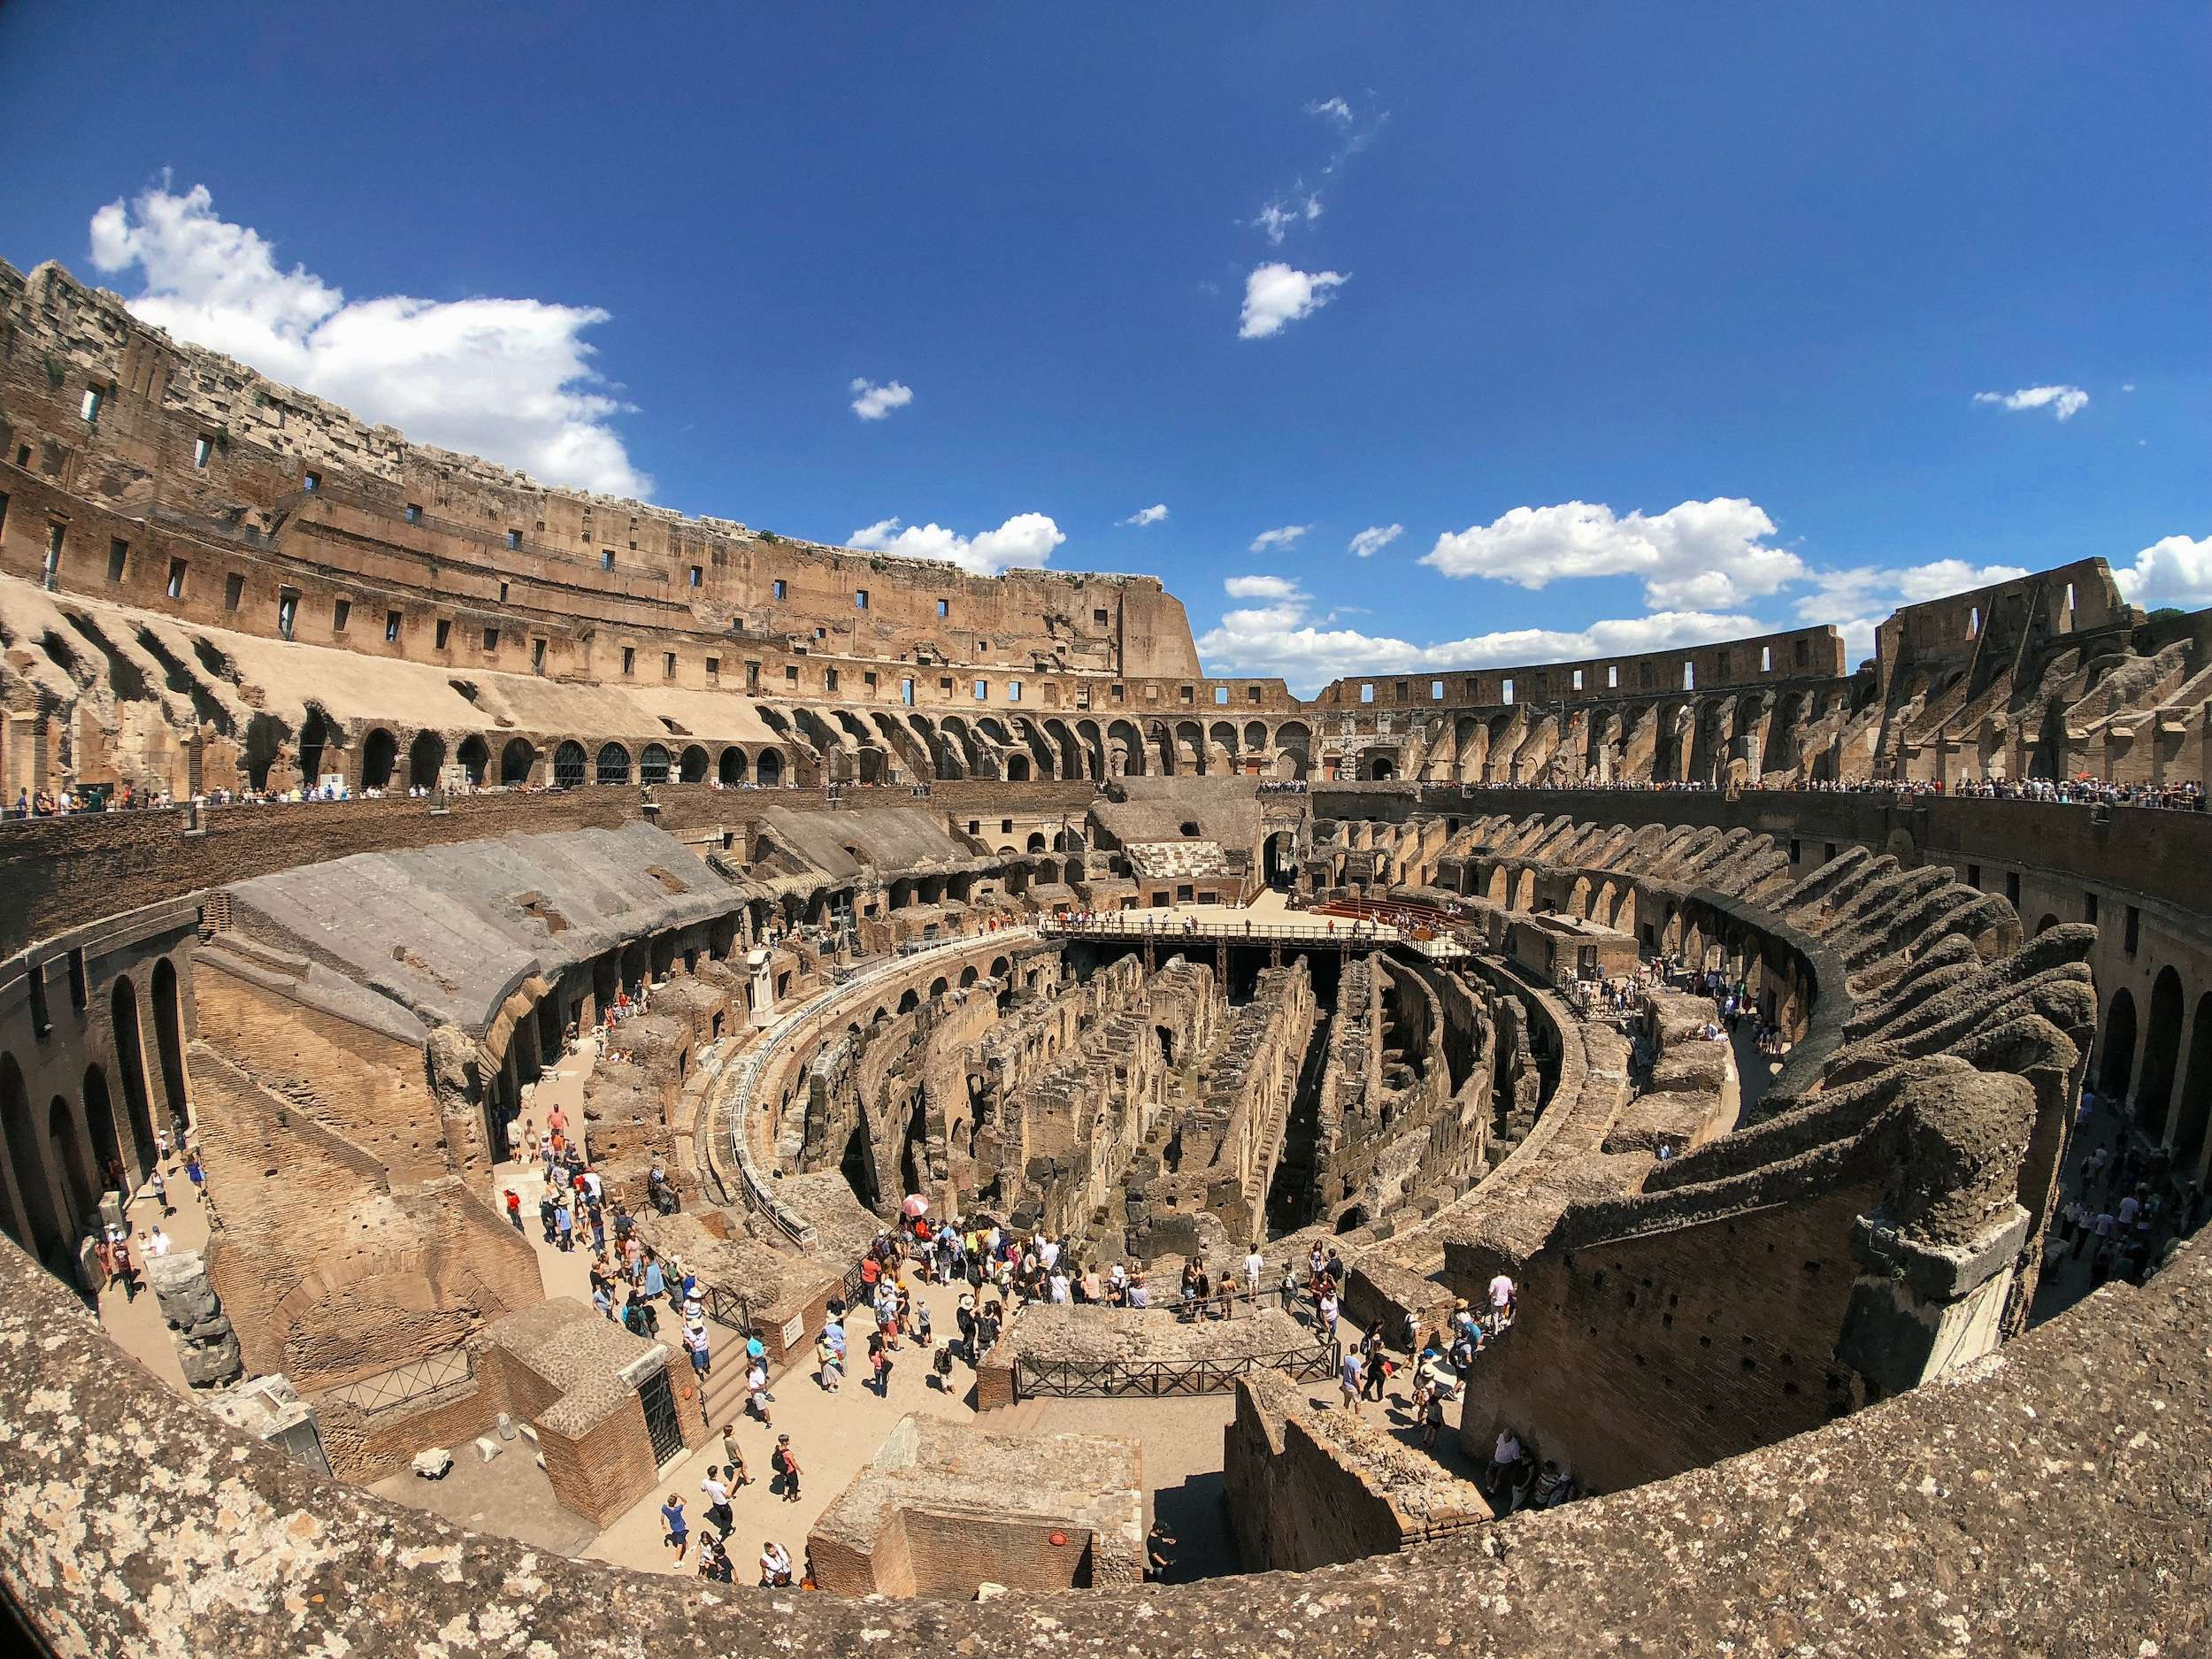 Colosseum Rome a holiday destination in Italy